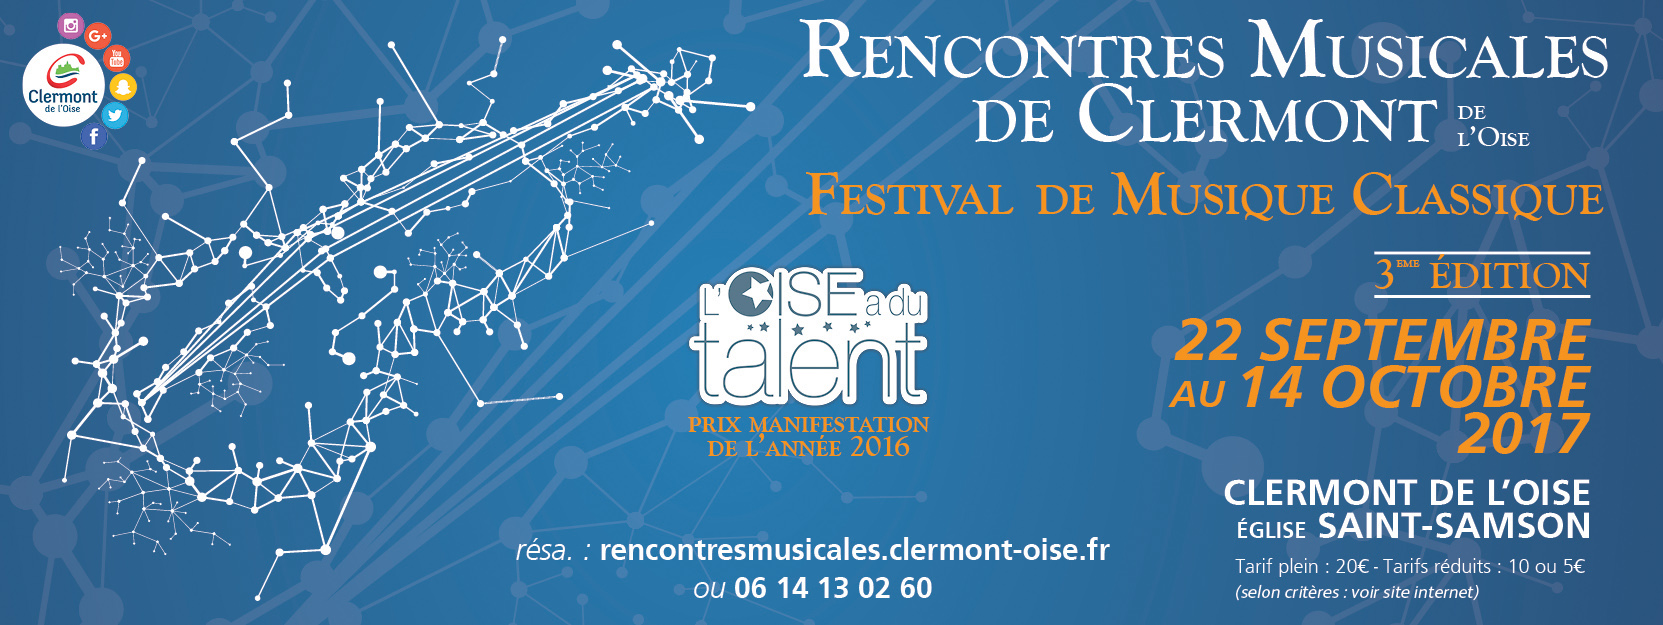 rencontres musicales clermont, crédit photo :